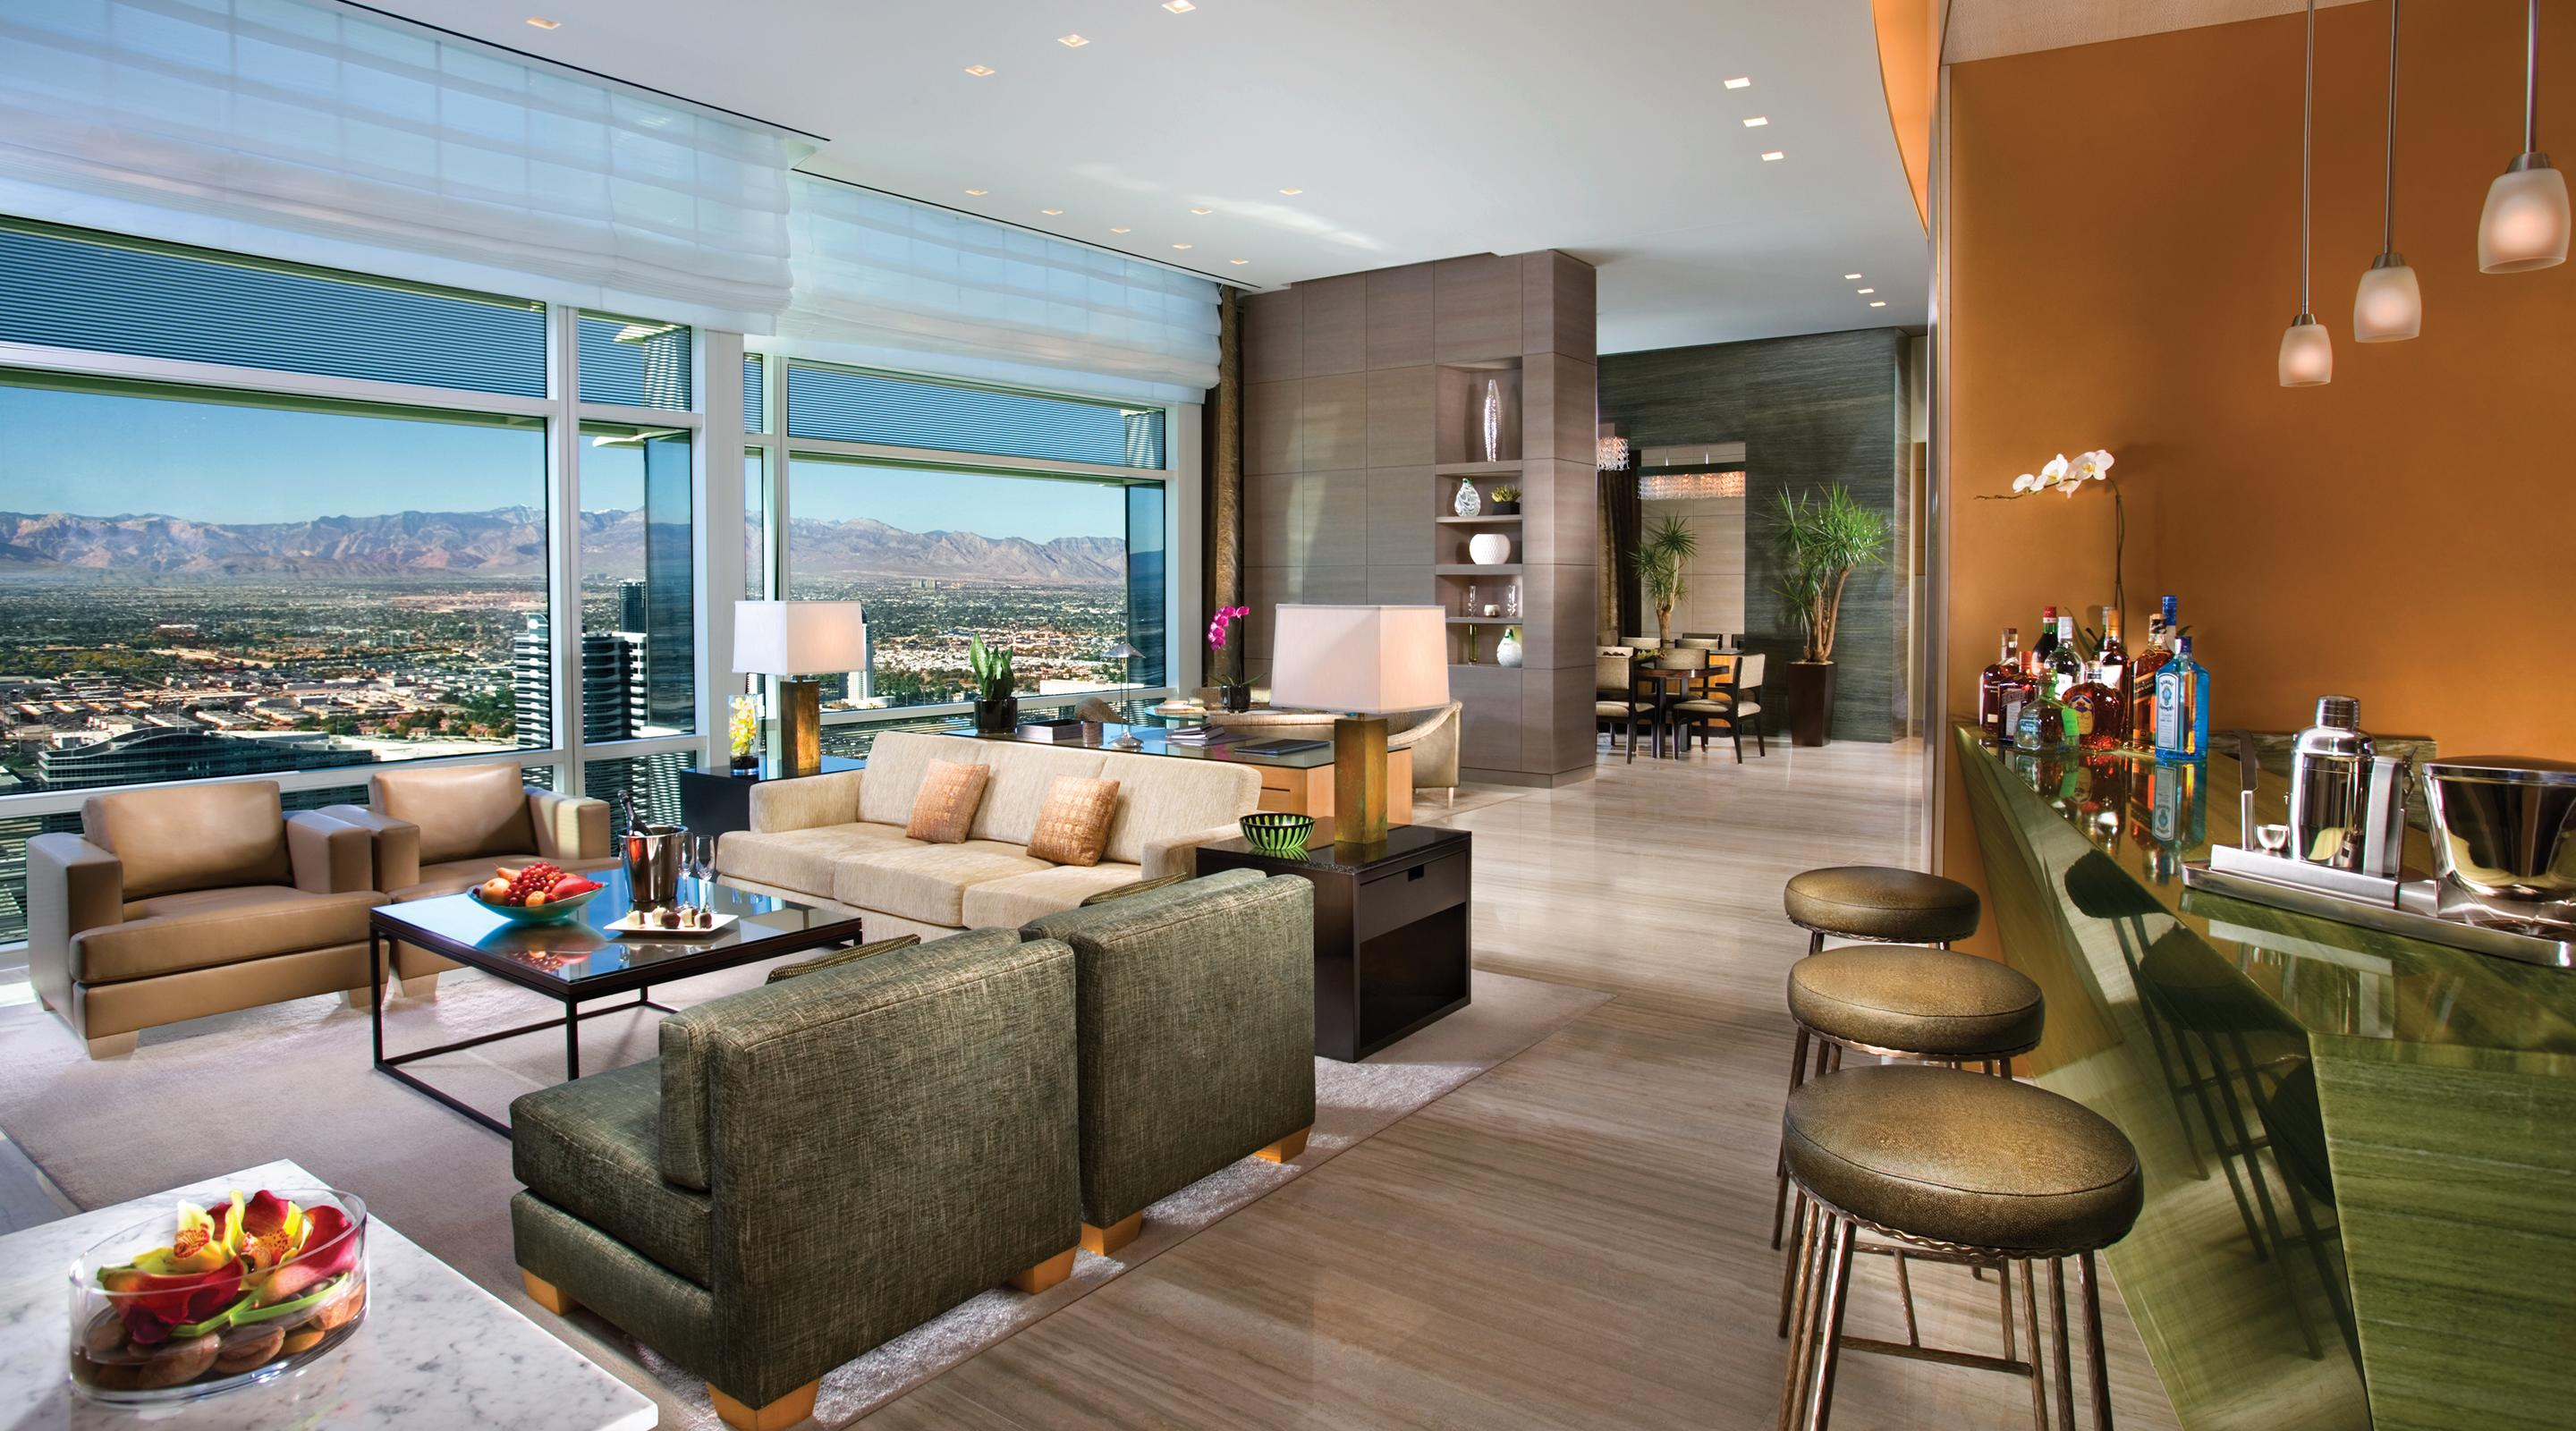 Living room with a nice mountain view.